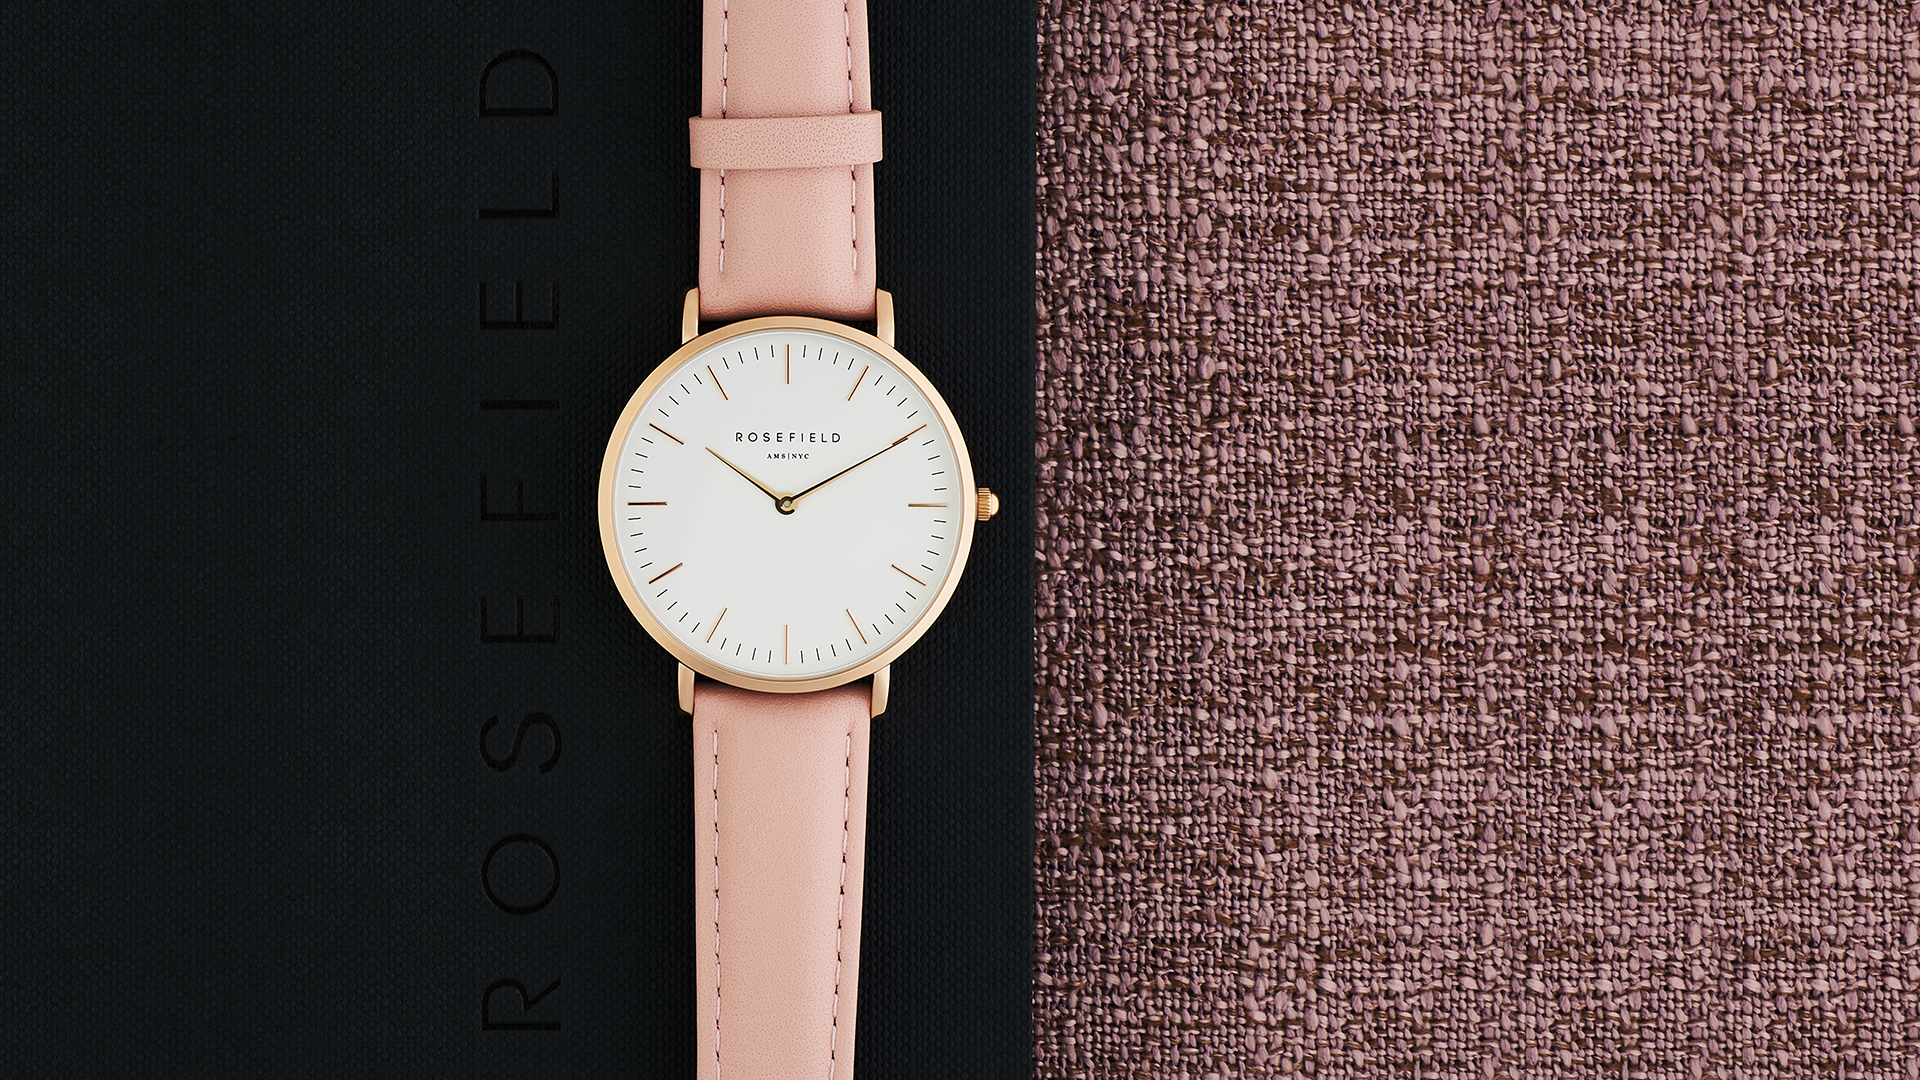 Rosefield wrist watch commercial at RDClicks Photography Kamloops